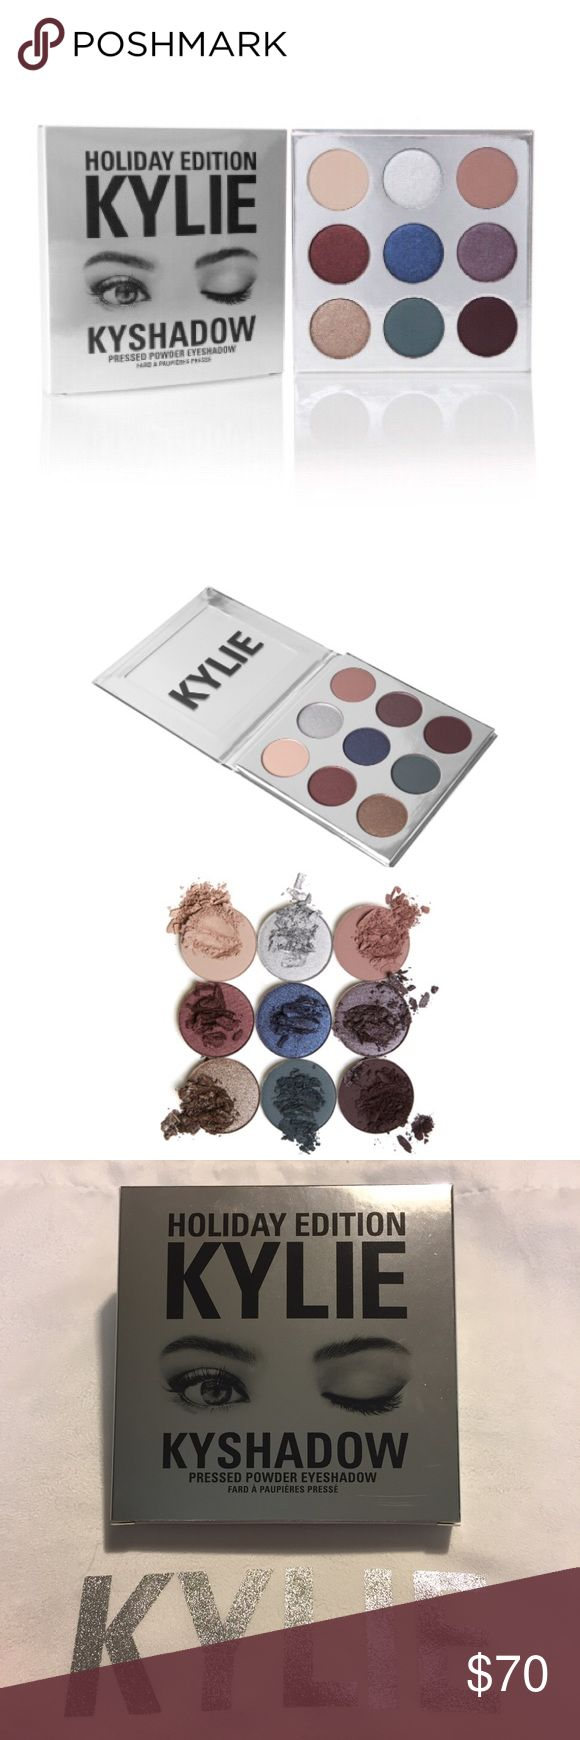 Kylie Holiday Edition Kyshadow Palette contains 9 pressed Eyeshadows that are infused with Diamond Powder! ❄️Sugar Cookie (matte finish creamy warm nude) ❄️Frosty (metallic finish platinum silver) ❄️Chestnut (matte finish muted dusty mauve) ❄️Mittens (metallic finish deepened mahogany red) ❄️Winter (metallic finish shimmering denim blue) ❄️Nutcracker (metallic finish silvery Plum) ❄️Gingerbread (metallic finish shimmering silver bronze) ❄️Evergreen (matte finish deep teal green) ❄️Silent…